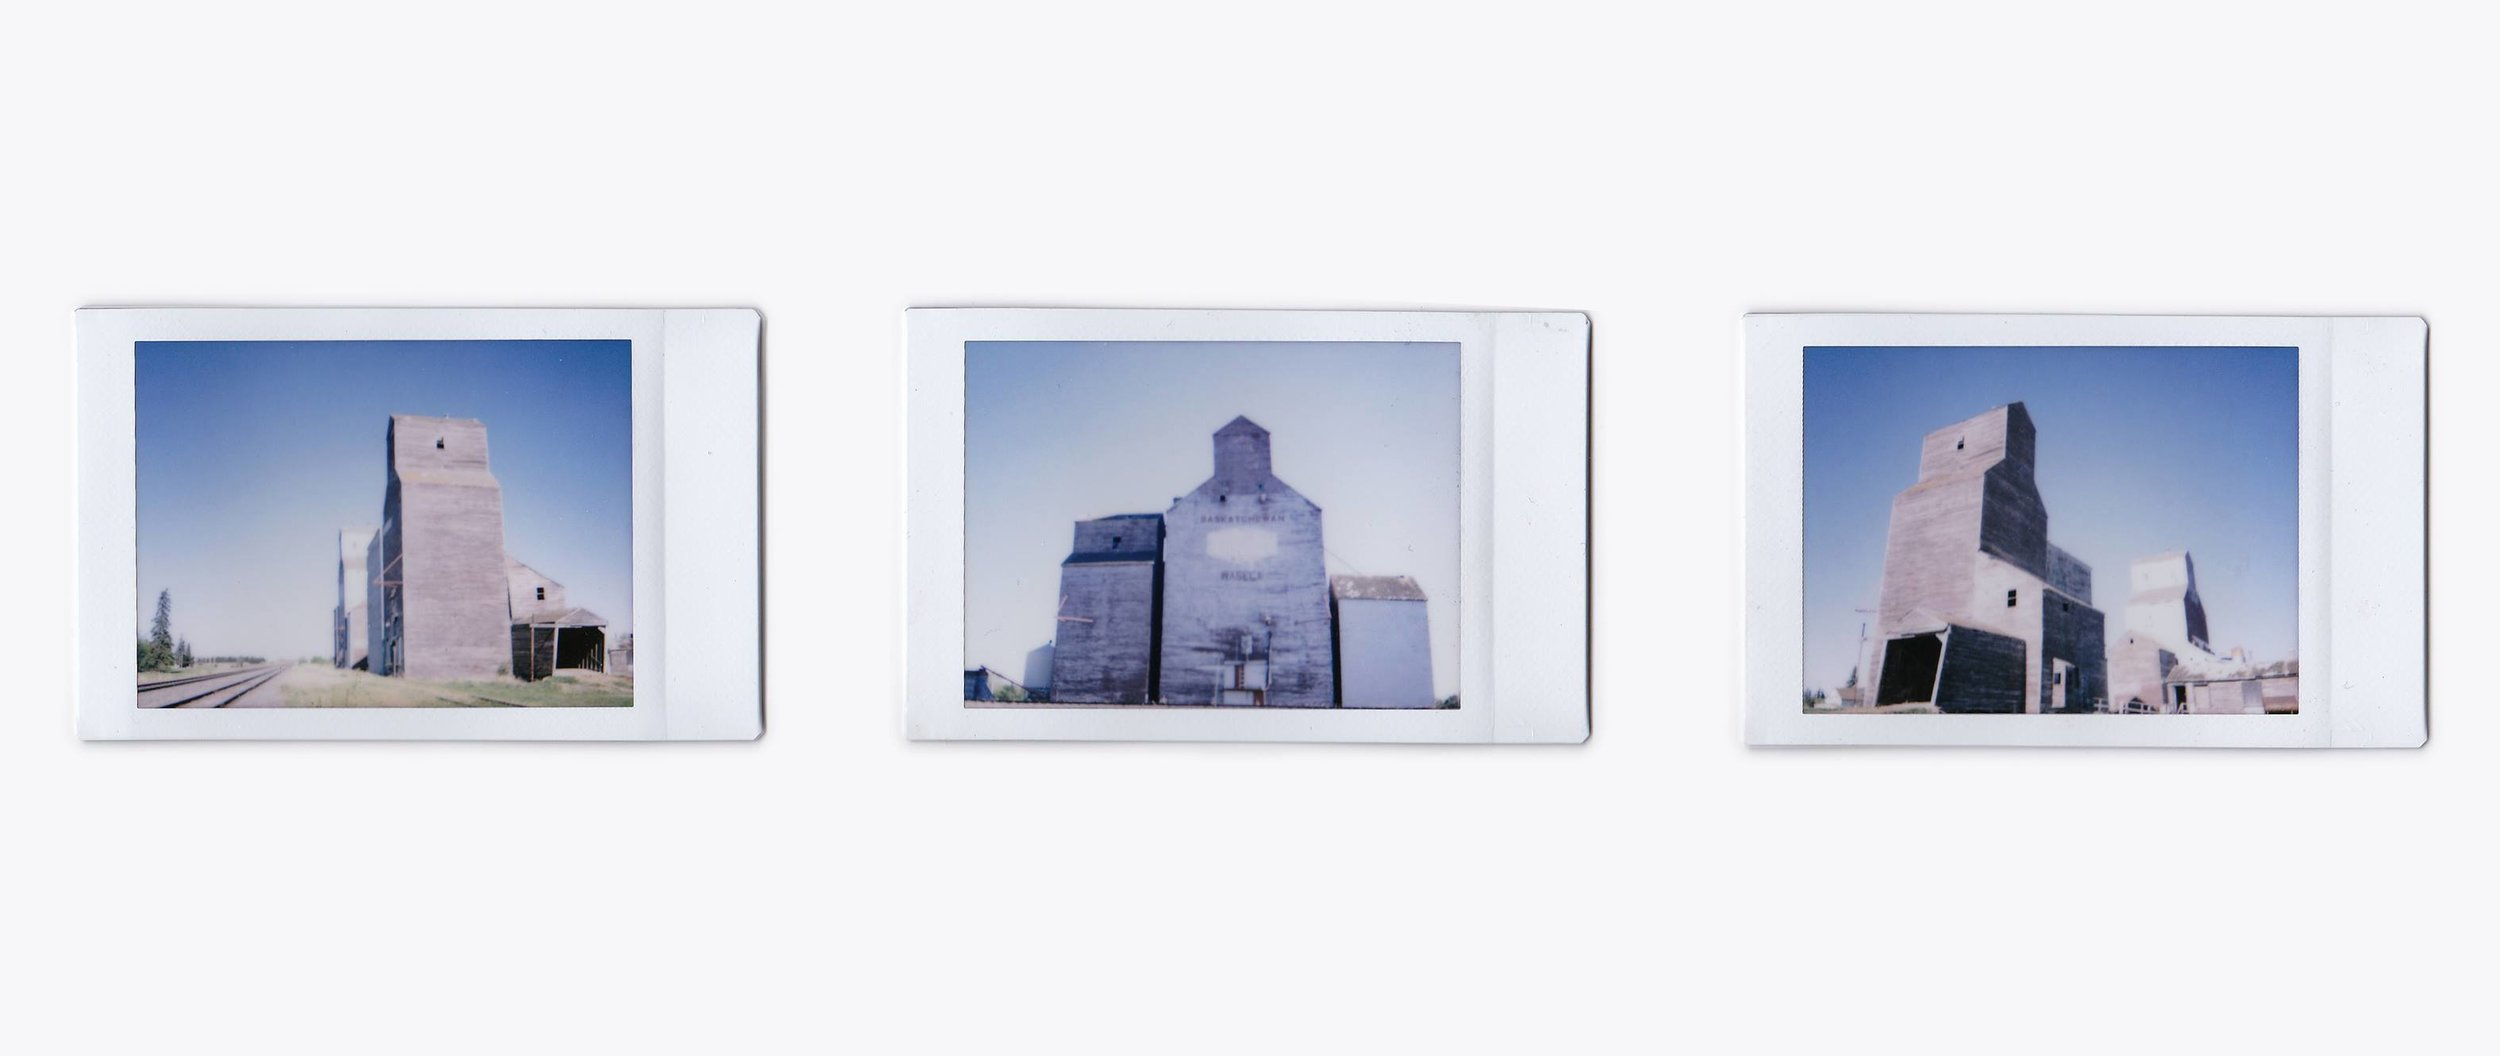 The thriving metropolis from which I came. - inkjet print of instax mini photographs, 18.5 x 44